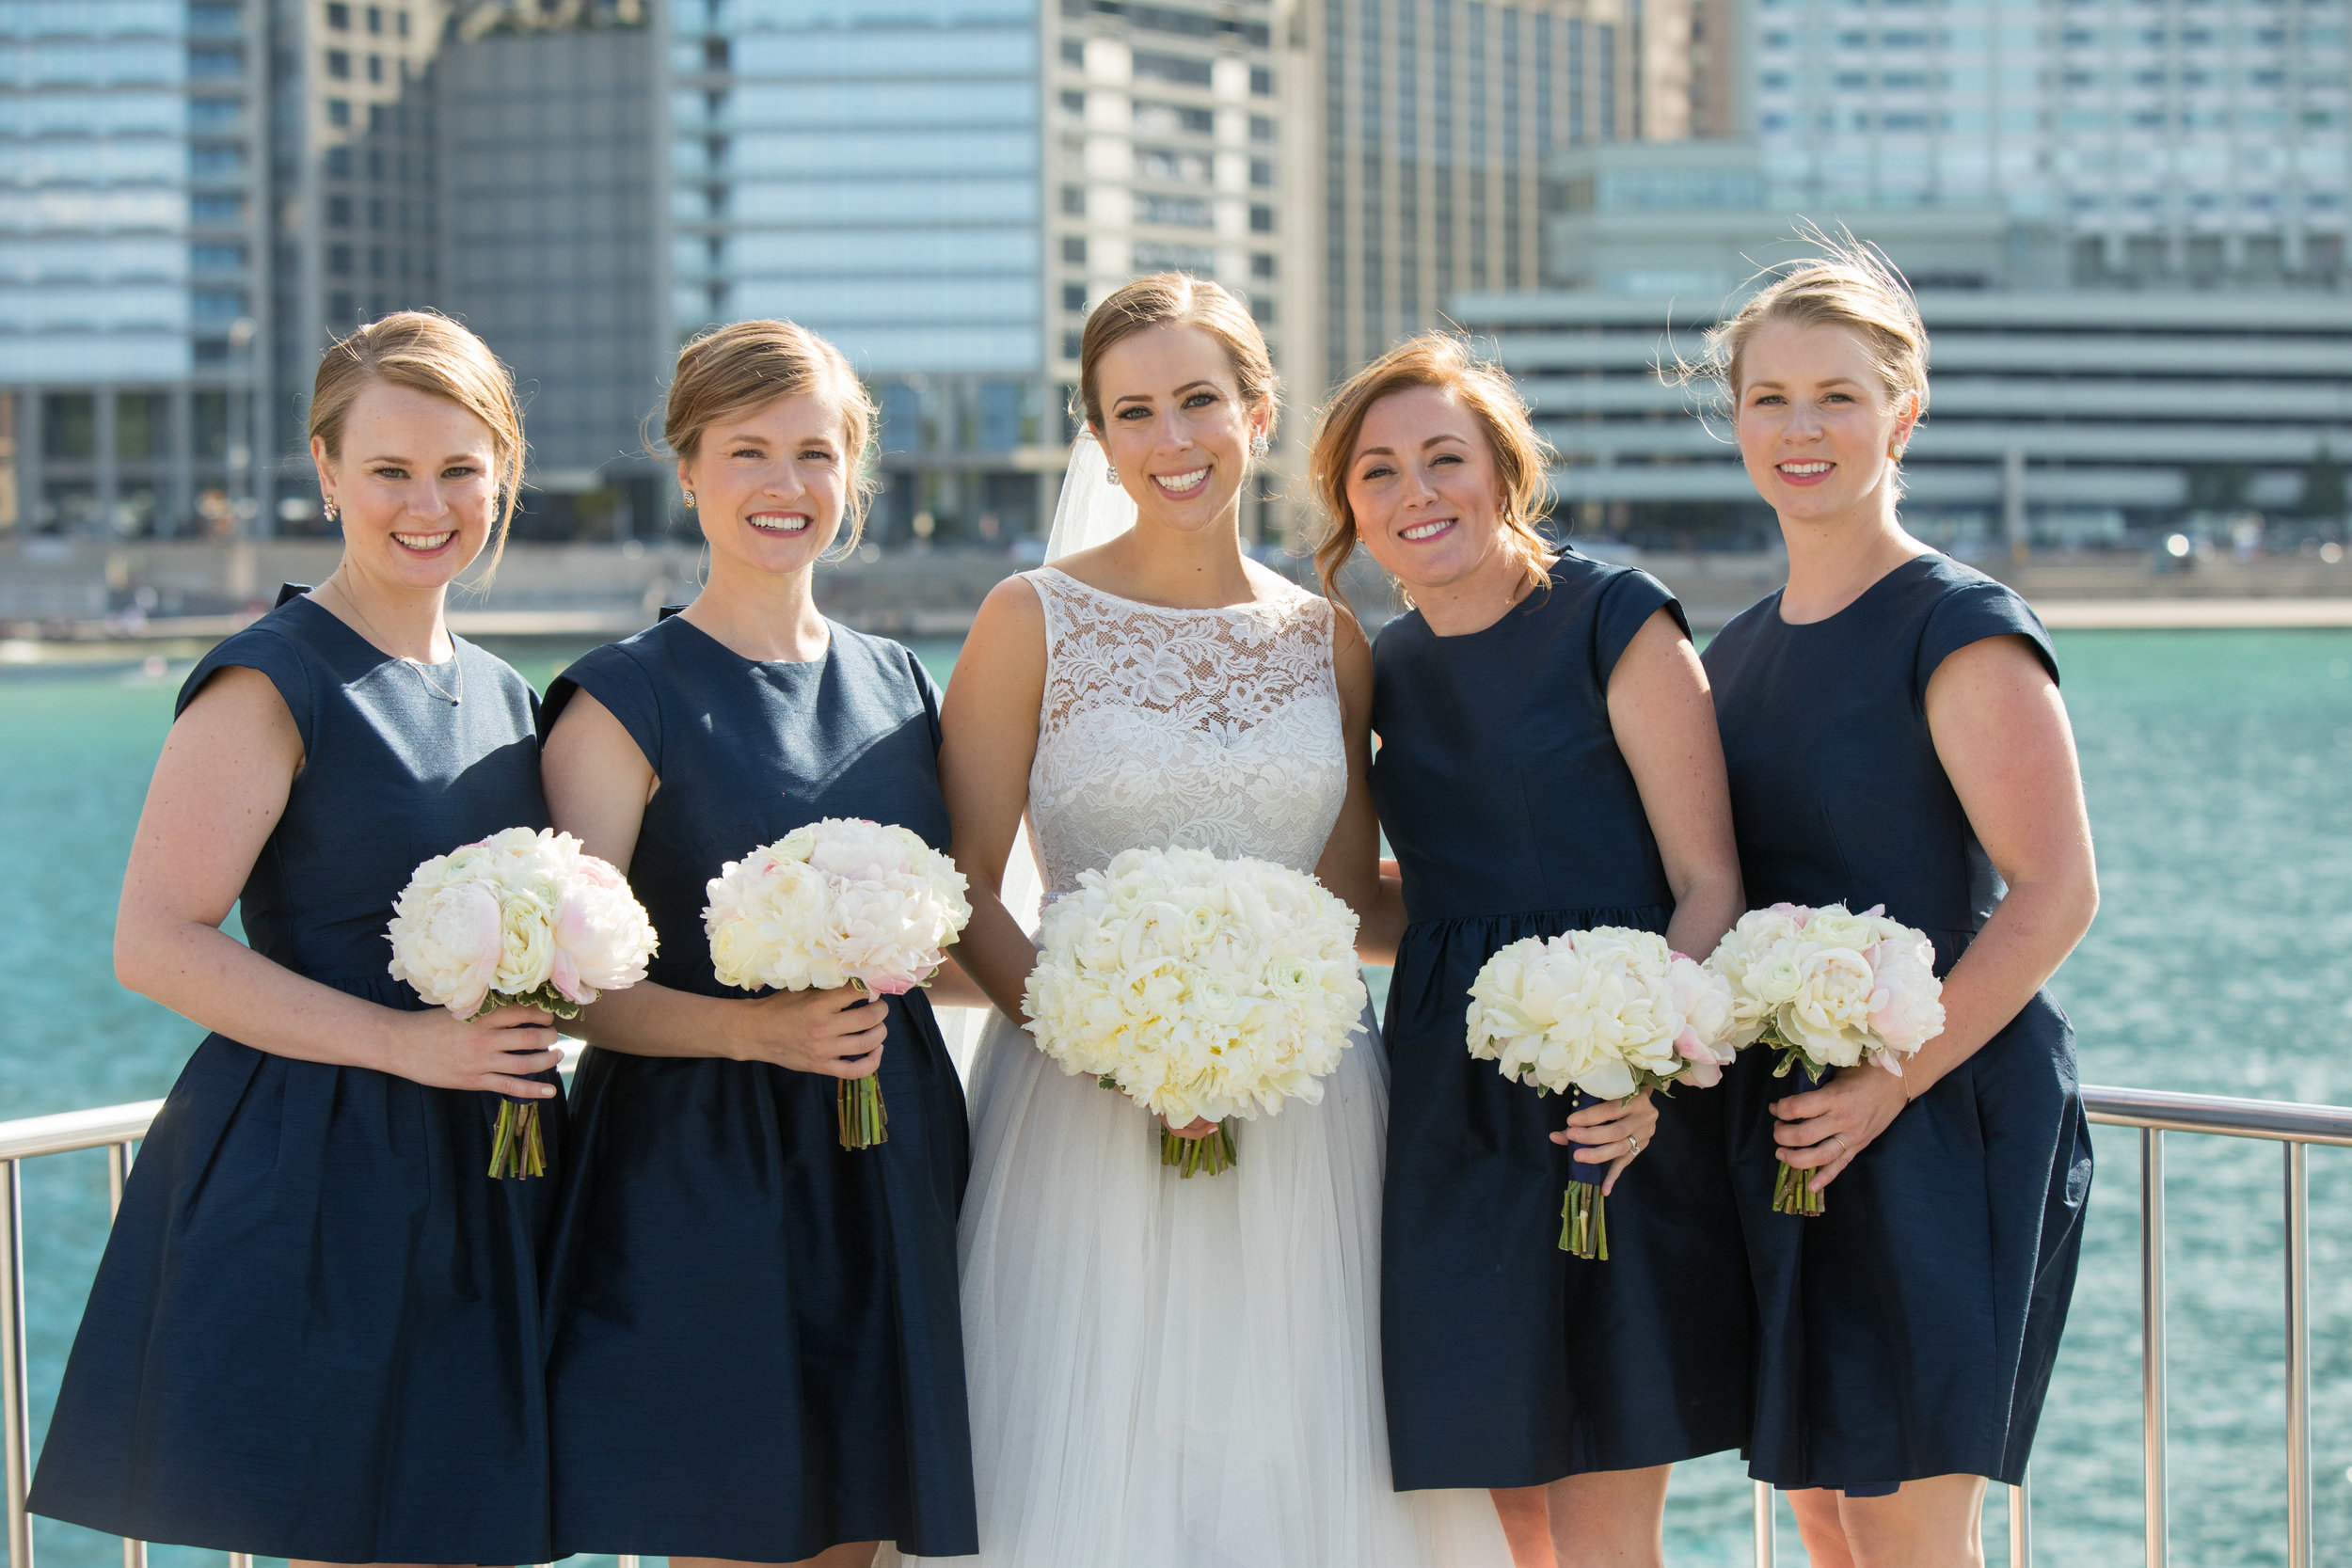 Bride and Bridesmaids  Navy Bridesmaid Dresses  School of the Art Institute  Planning by Wrap It Up Parties